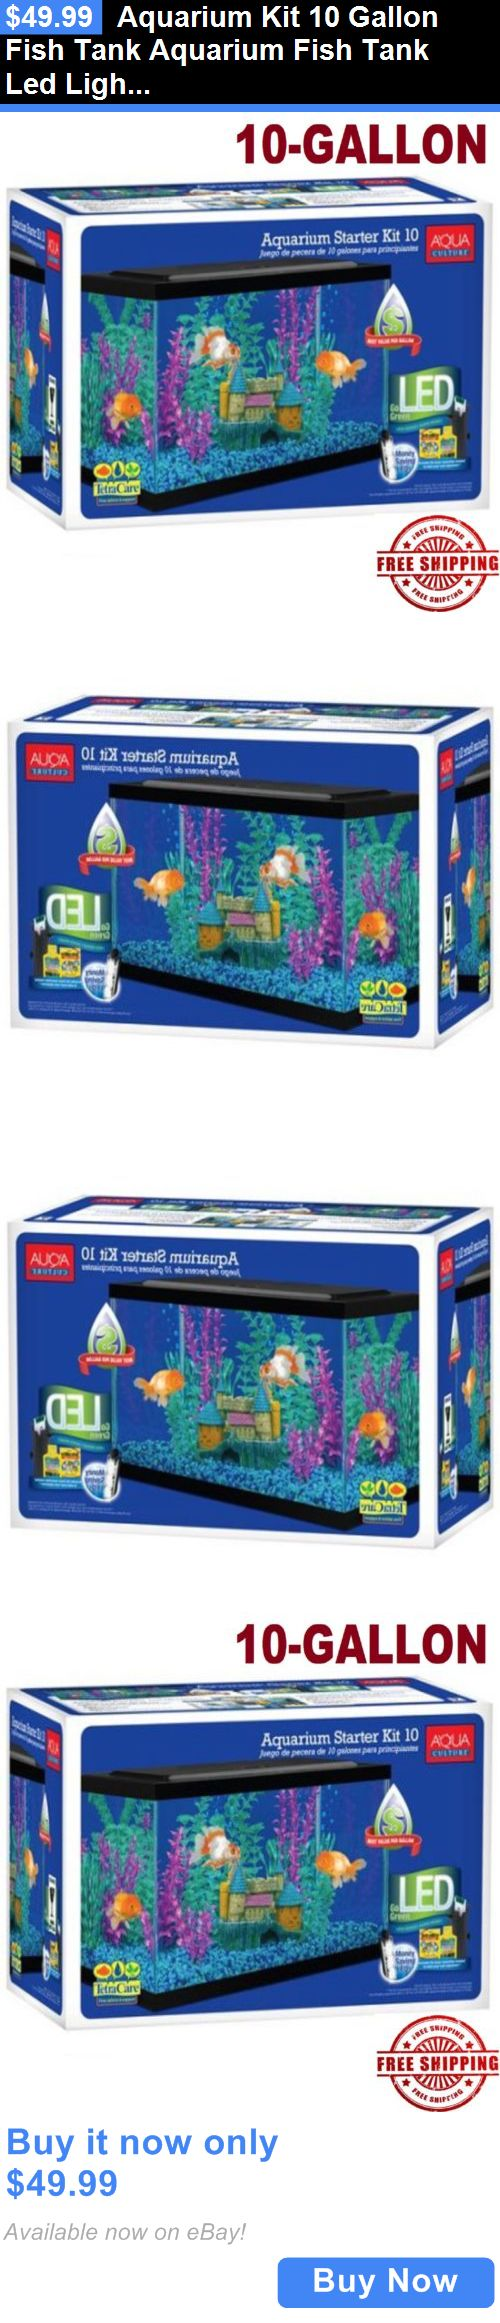 Fish tank heater 10 gallon - Animals Fish And Aquariums Aquarium Kit 10 Gallon Fish Tank Aquarium Fish Tank Led Light